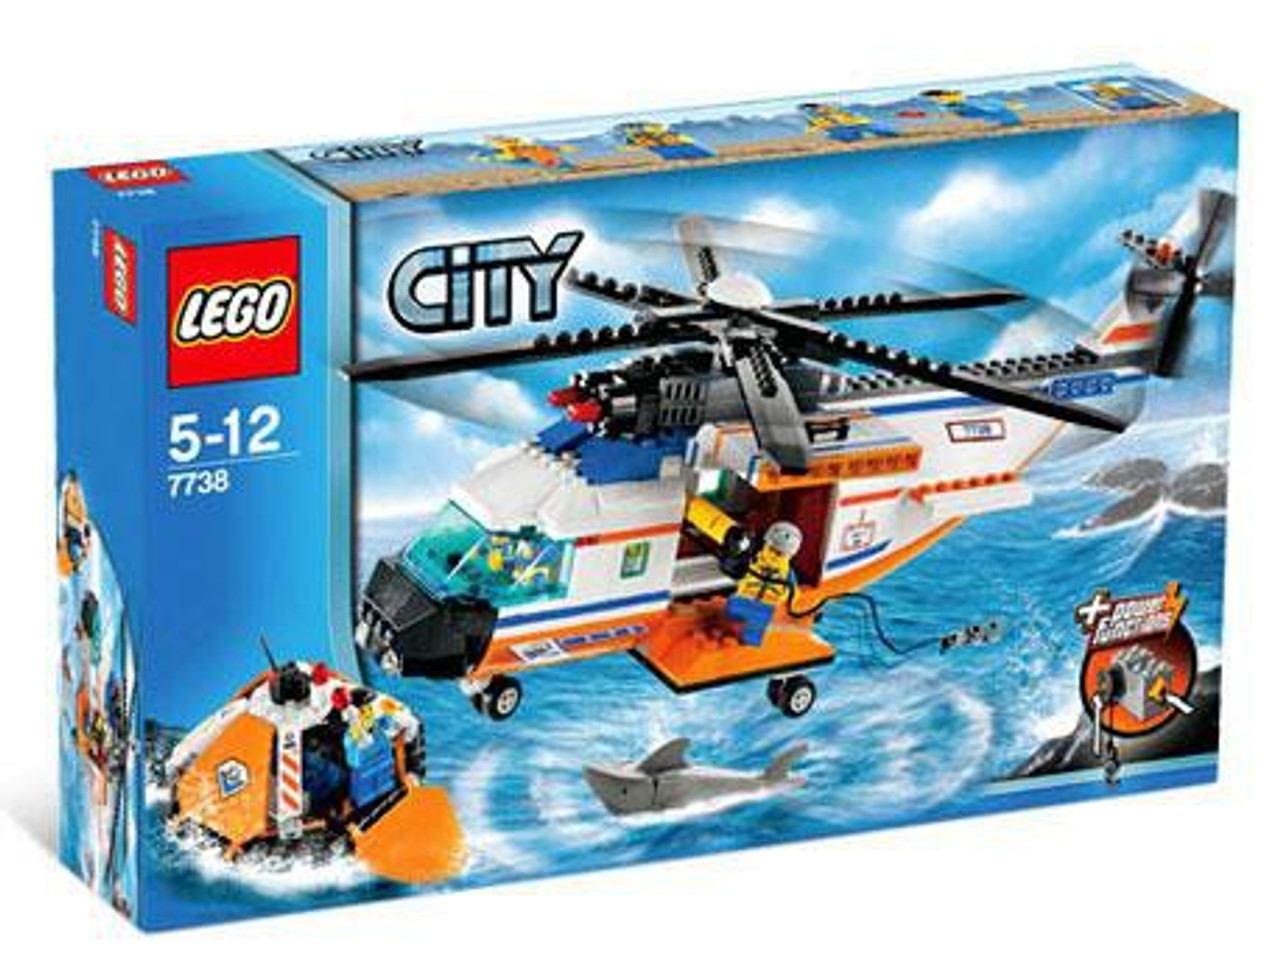 LEGO City Coast Guard Helicopter Life Raft Set 7738 - ToyWiz